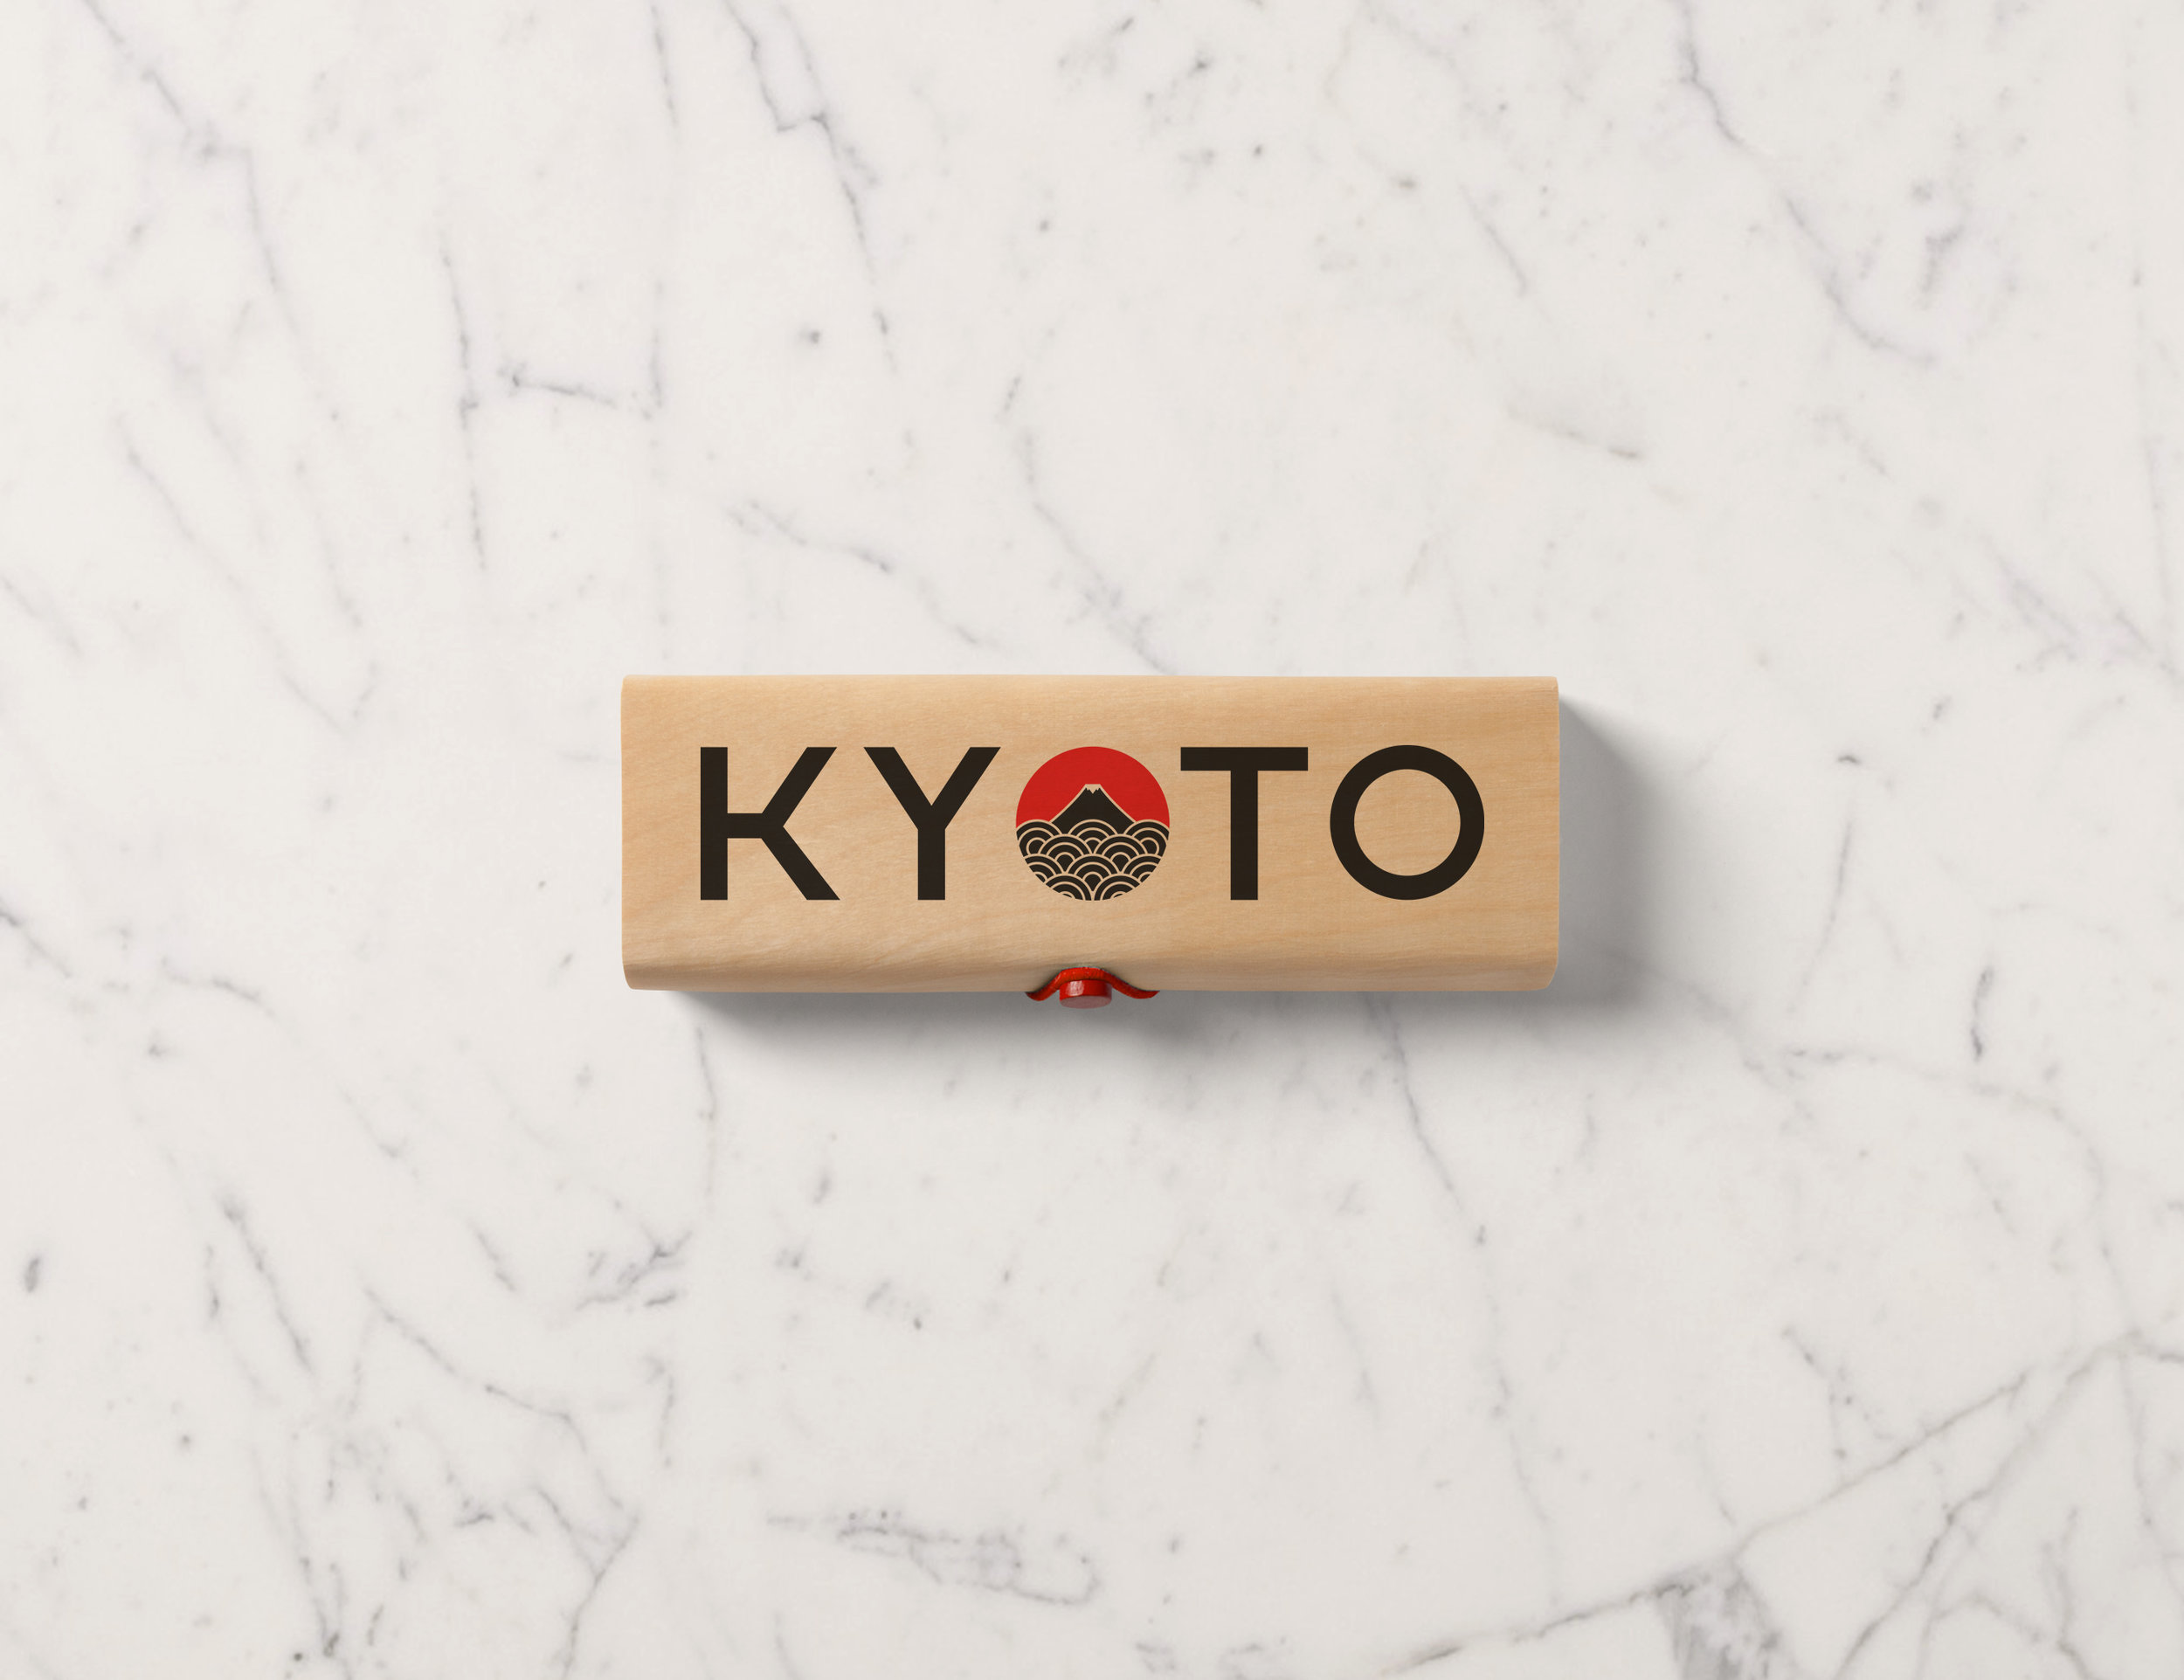 Kyoto_SmallBox.jpg